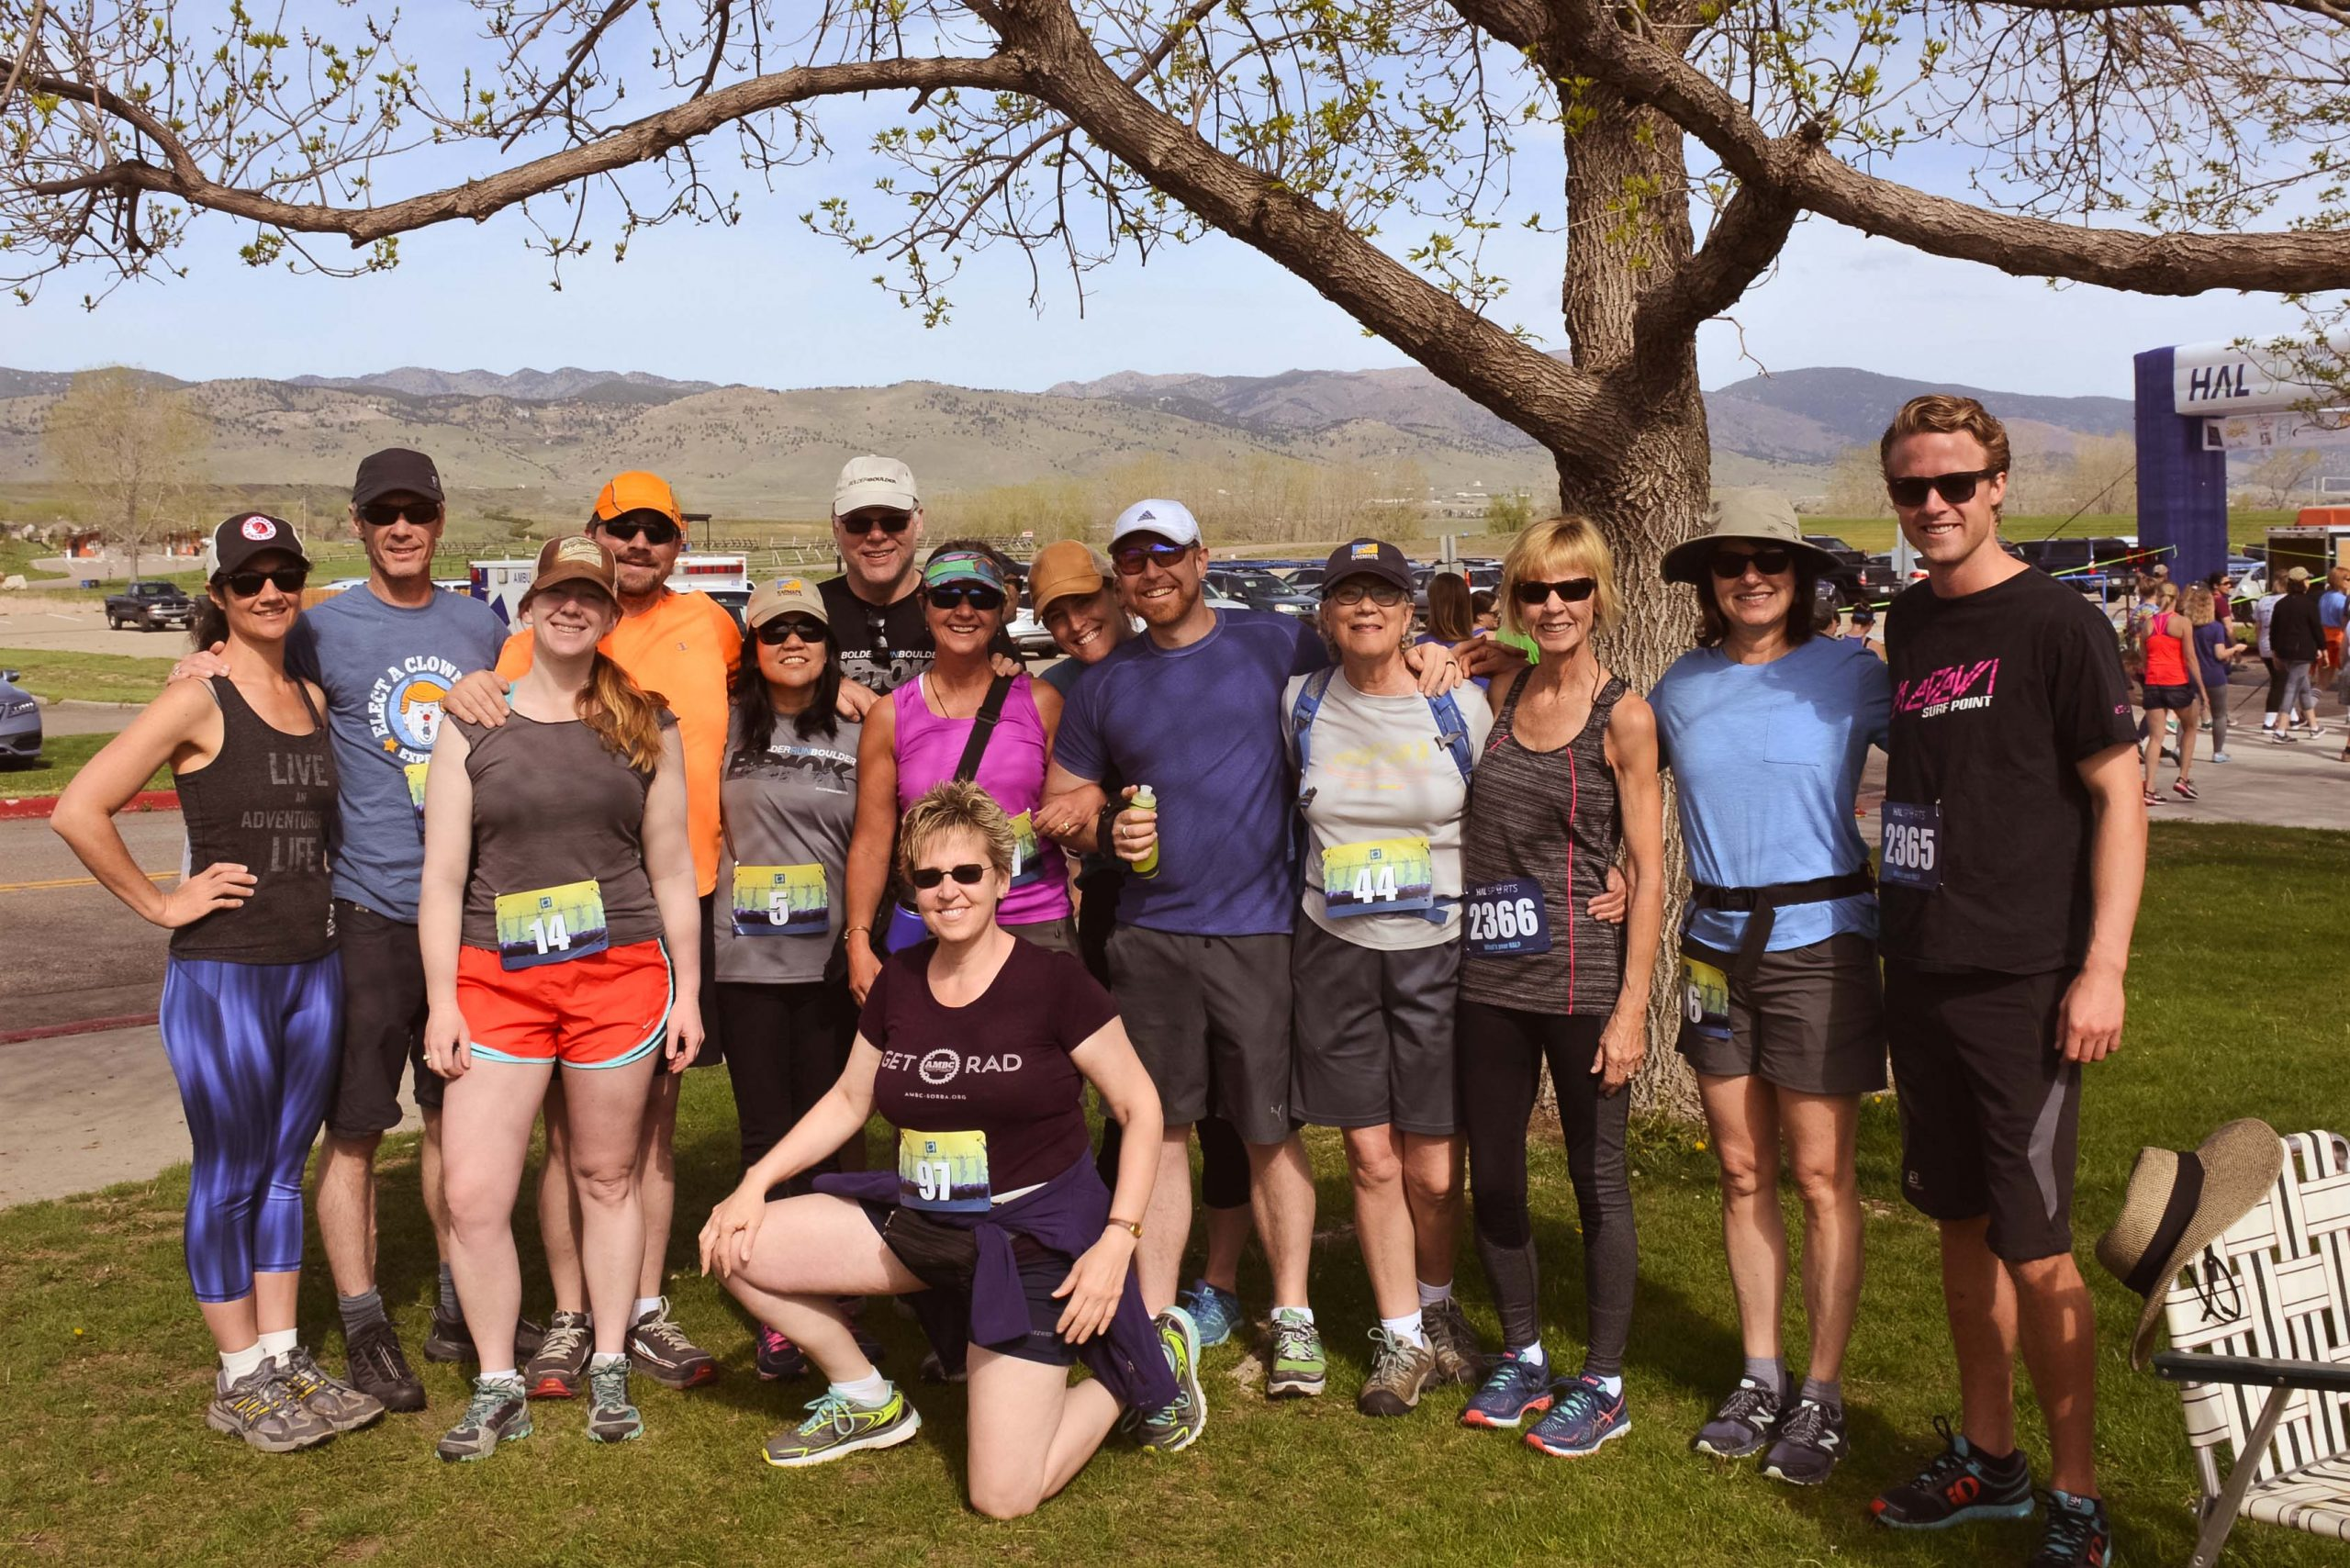 Windhorse Community Members at the run for suicide awareness.